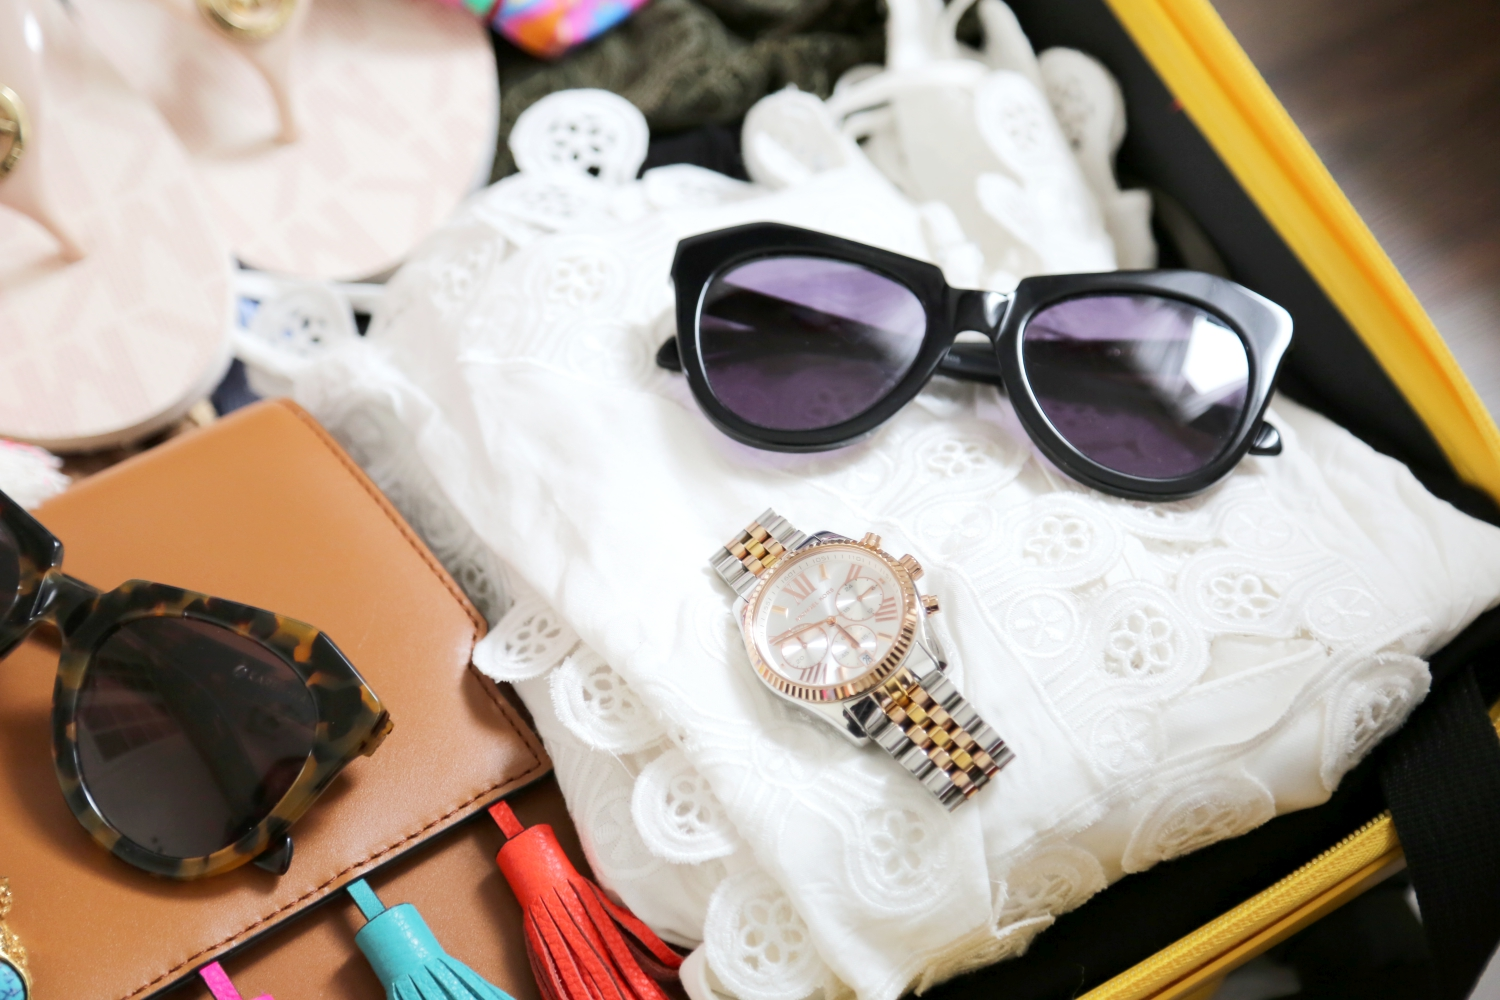 packing-vacation-luggage-sunglasses-dresses